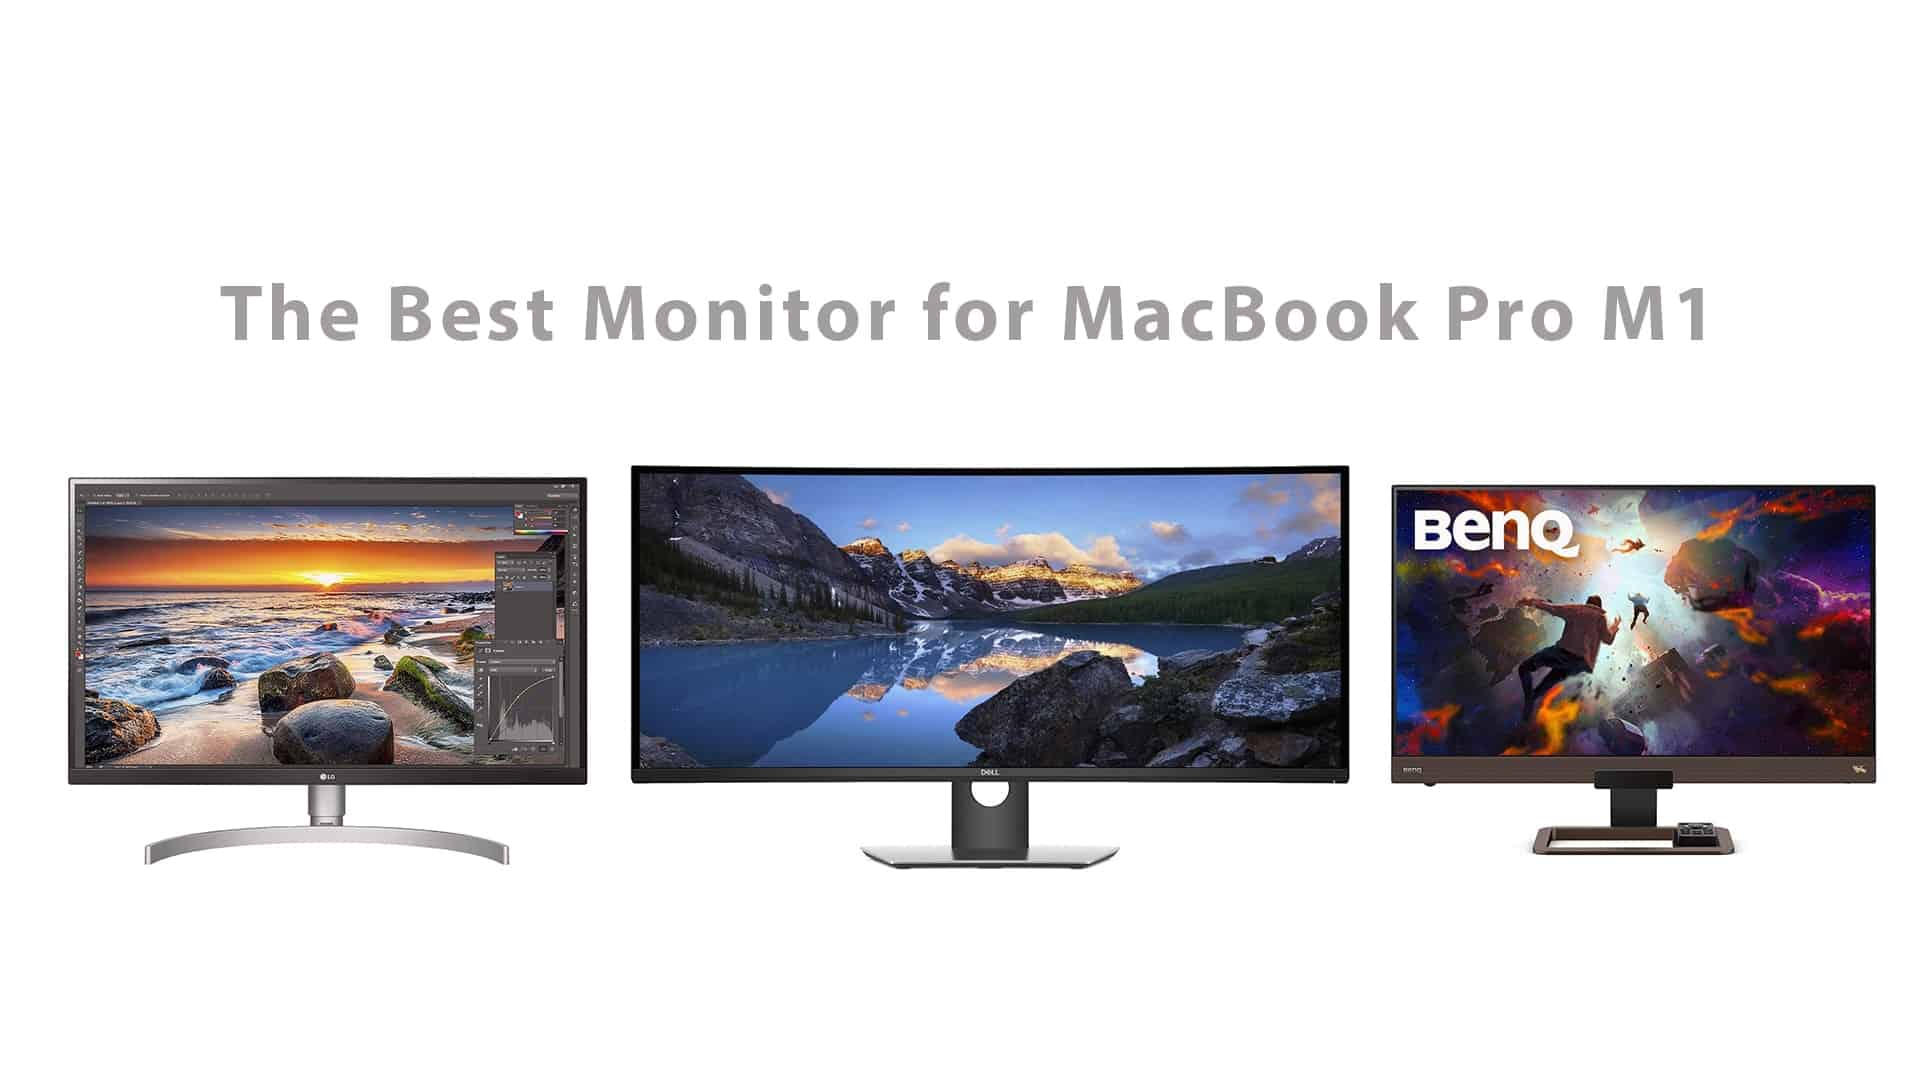 The Best Monitor for MacBook Pro M1